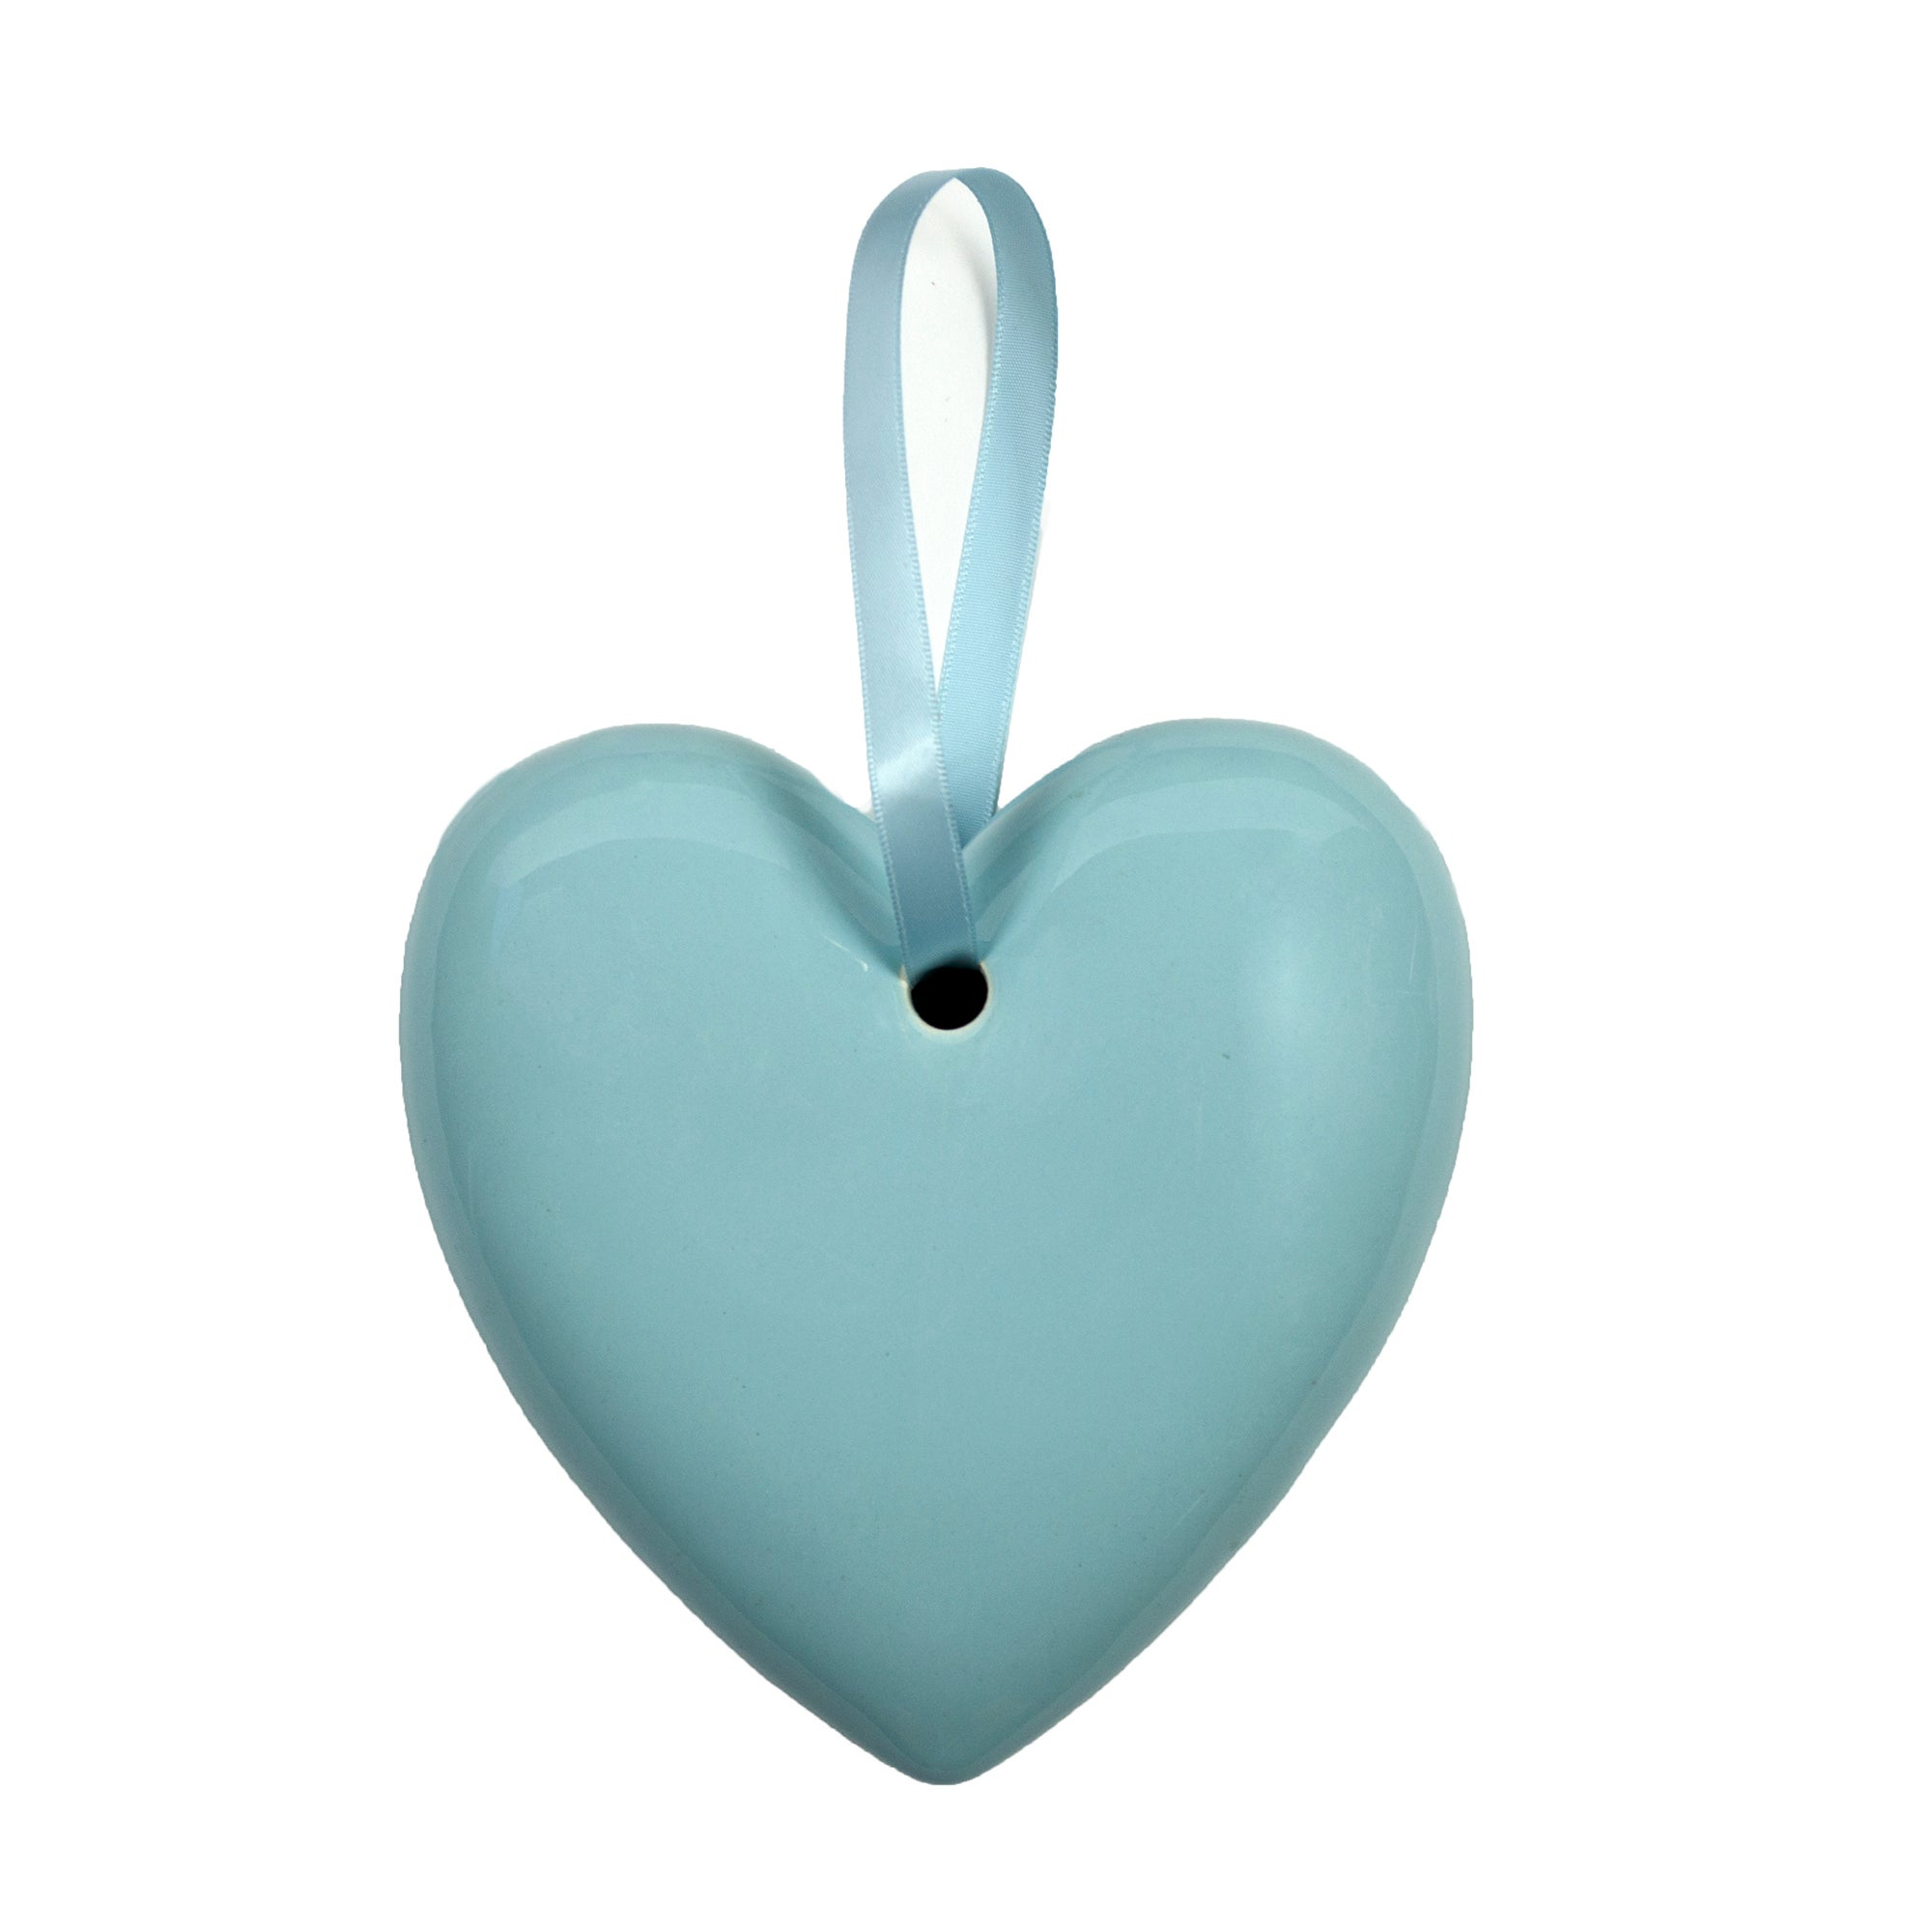 Rose and Ellis Clarendon Collection Blue Hanging Heart